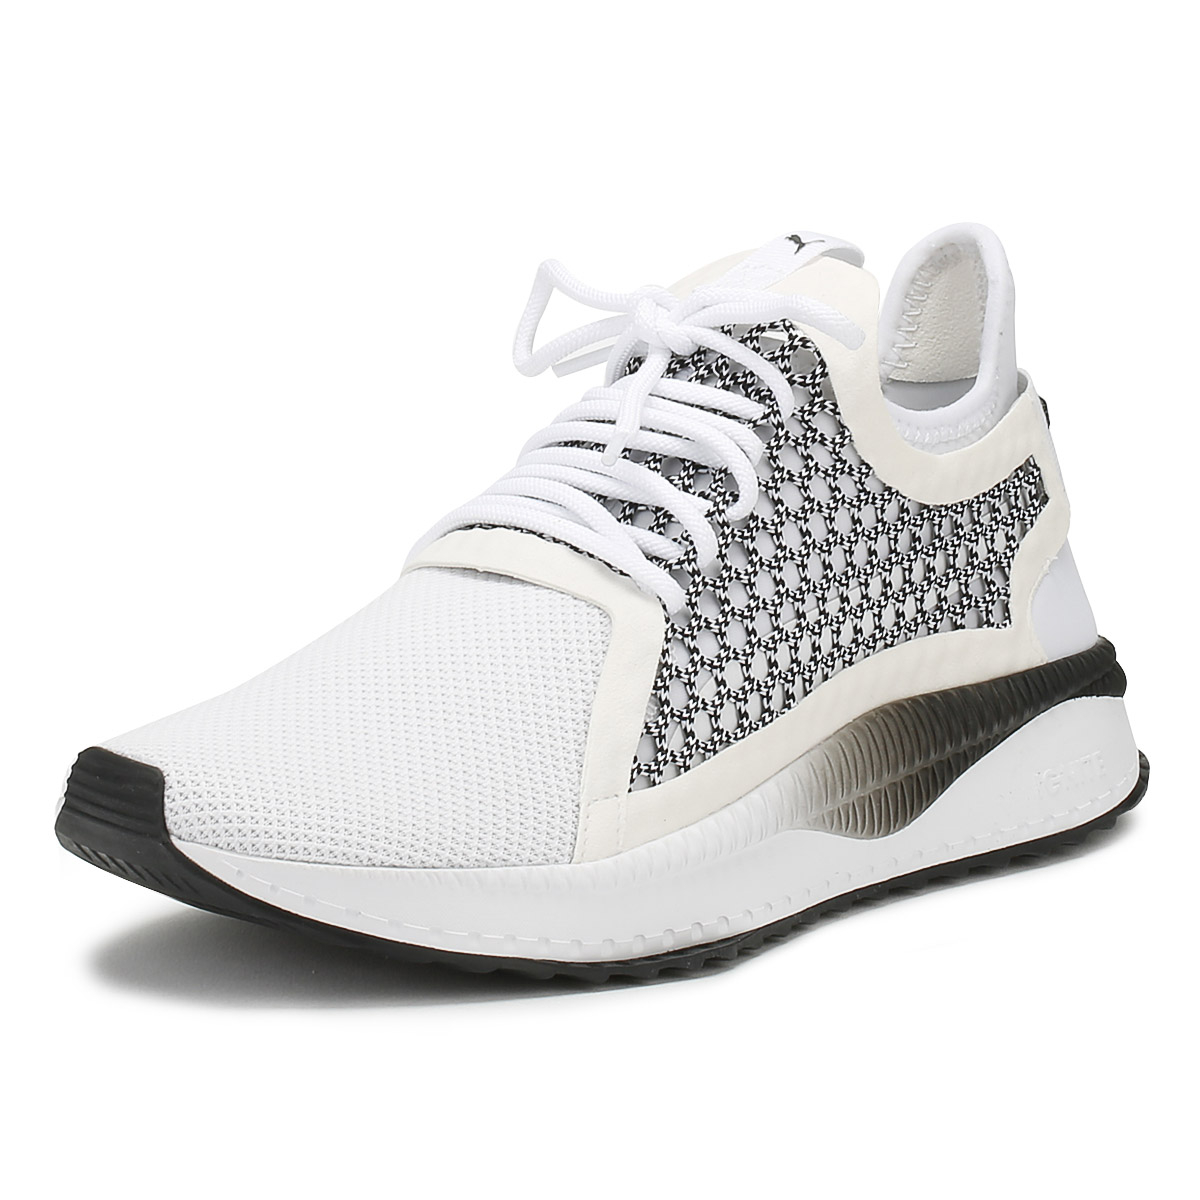 ed80afb9c9e8 Details about PUMA Mens Trainers White   Black Tsugi Netfit v2 Lace Up  Sport Running Shoes